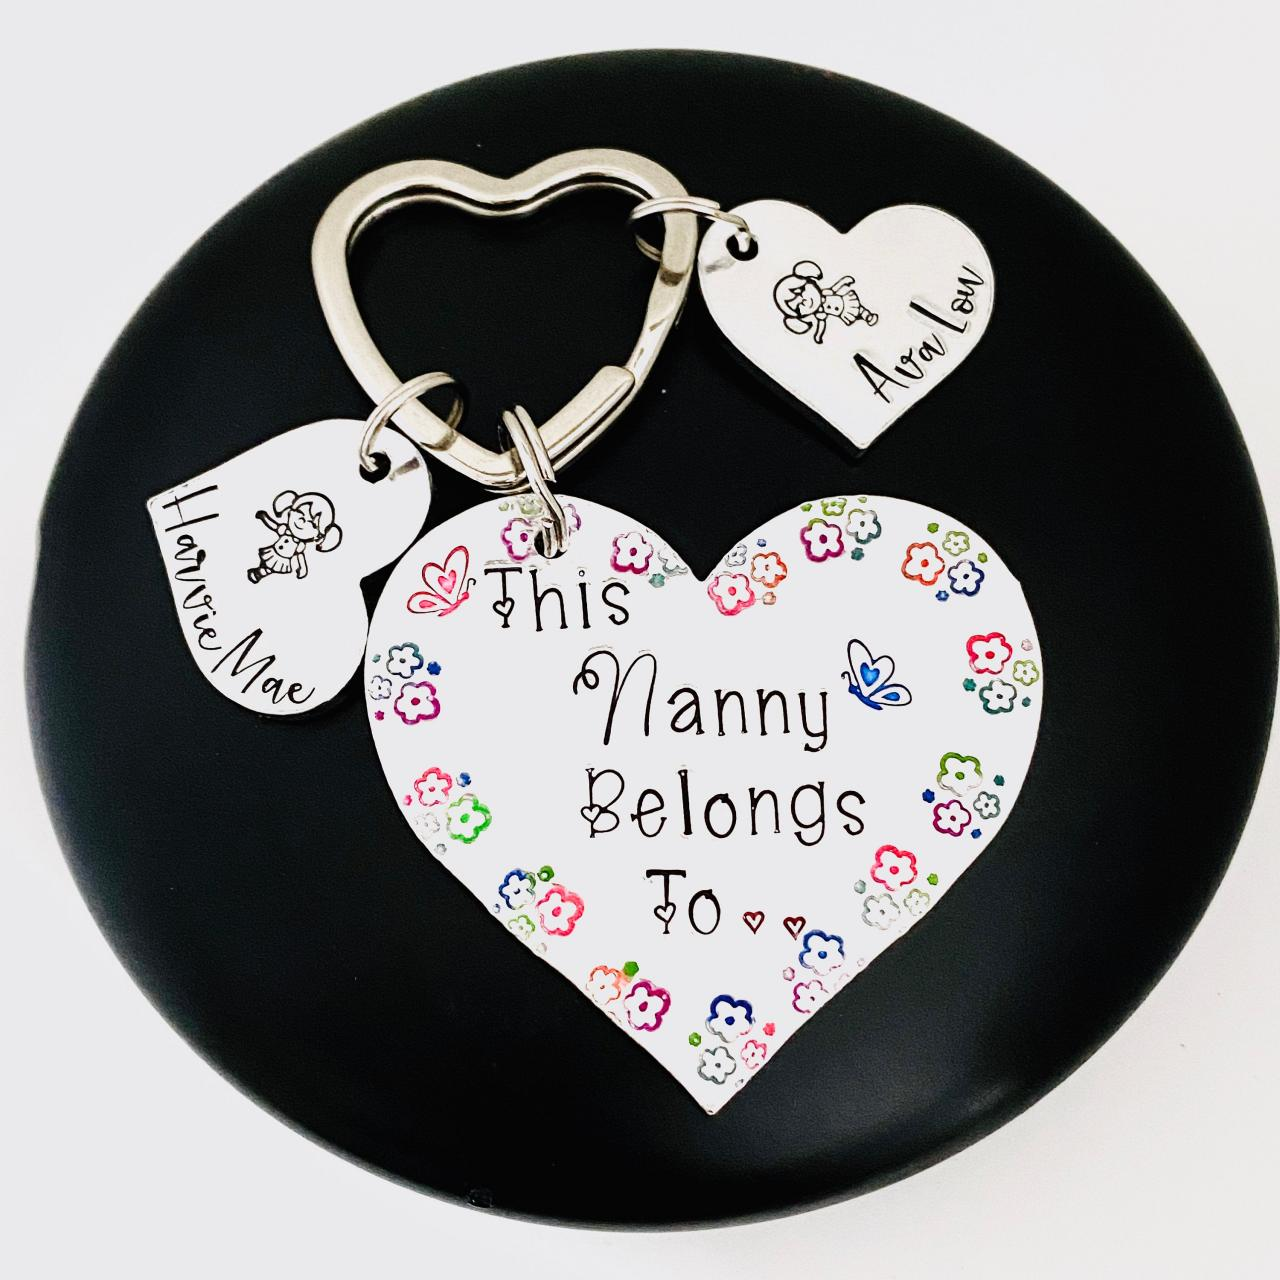 This Nanny belongs to Keyring, Personalised Gift For Nana, Family Tree Gift, Personalized Nanny Keychain, Gift For Her, Grandparent Gift..